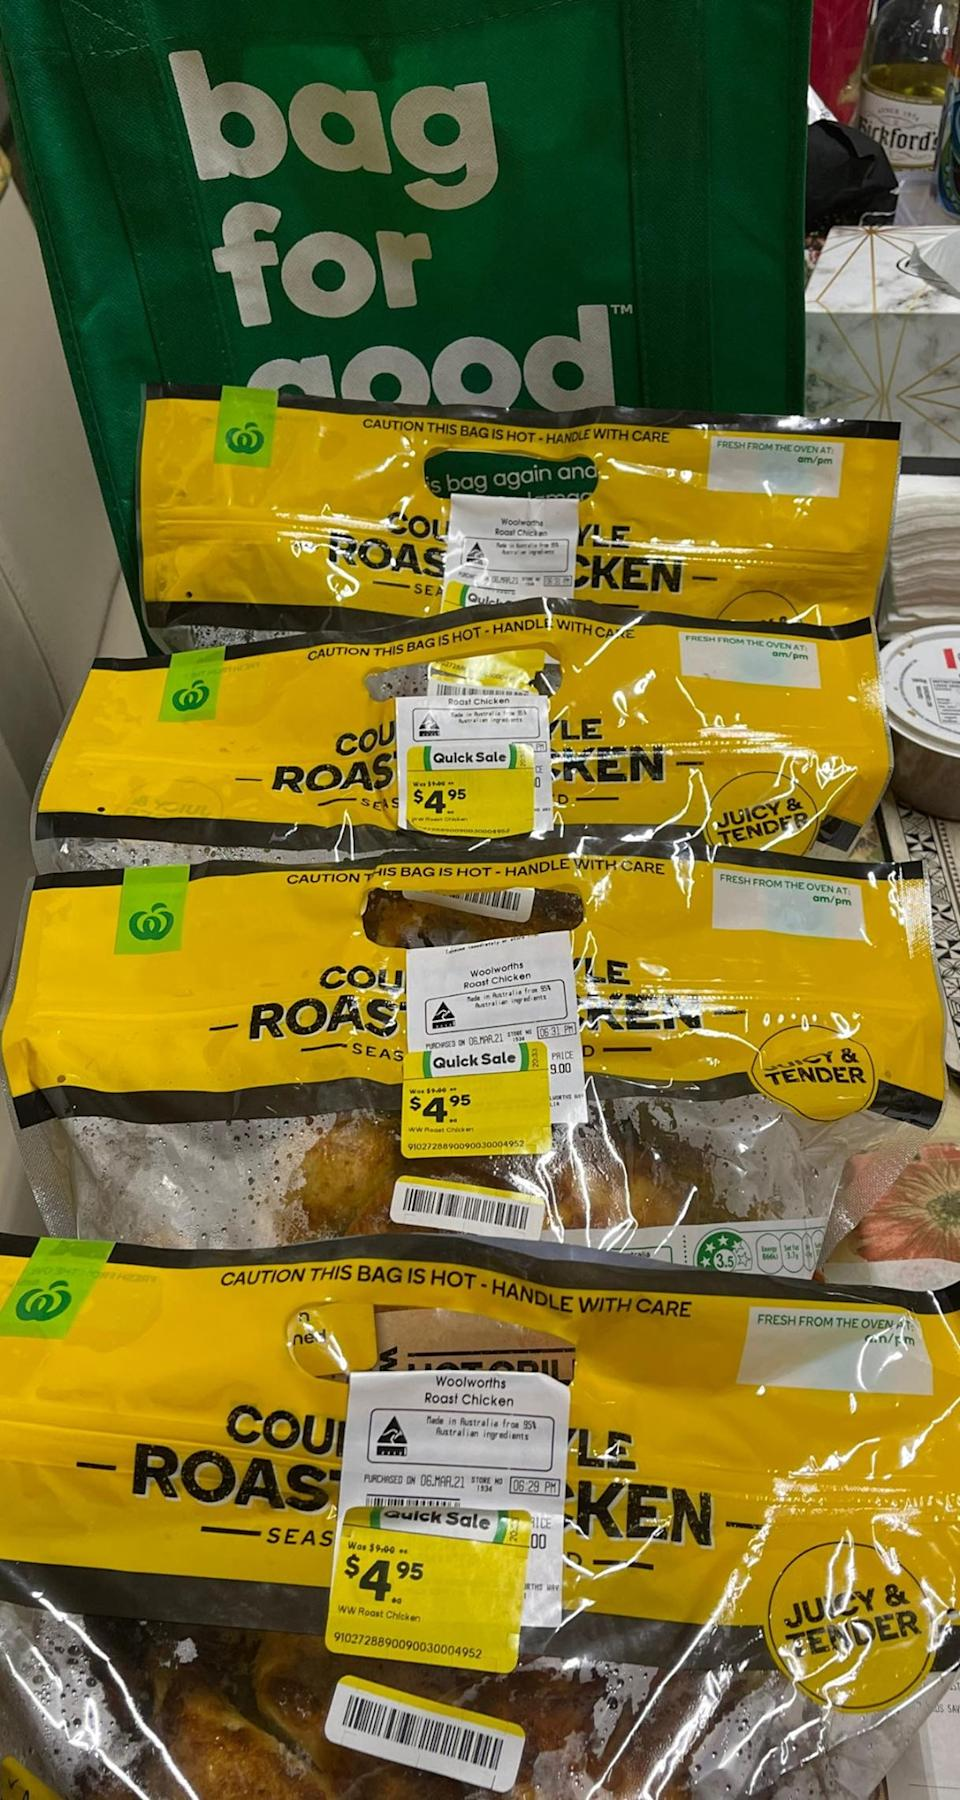 Several packaged hot roast barbecue chickens from Woolworths.